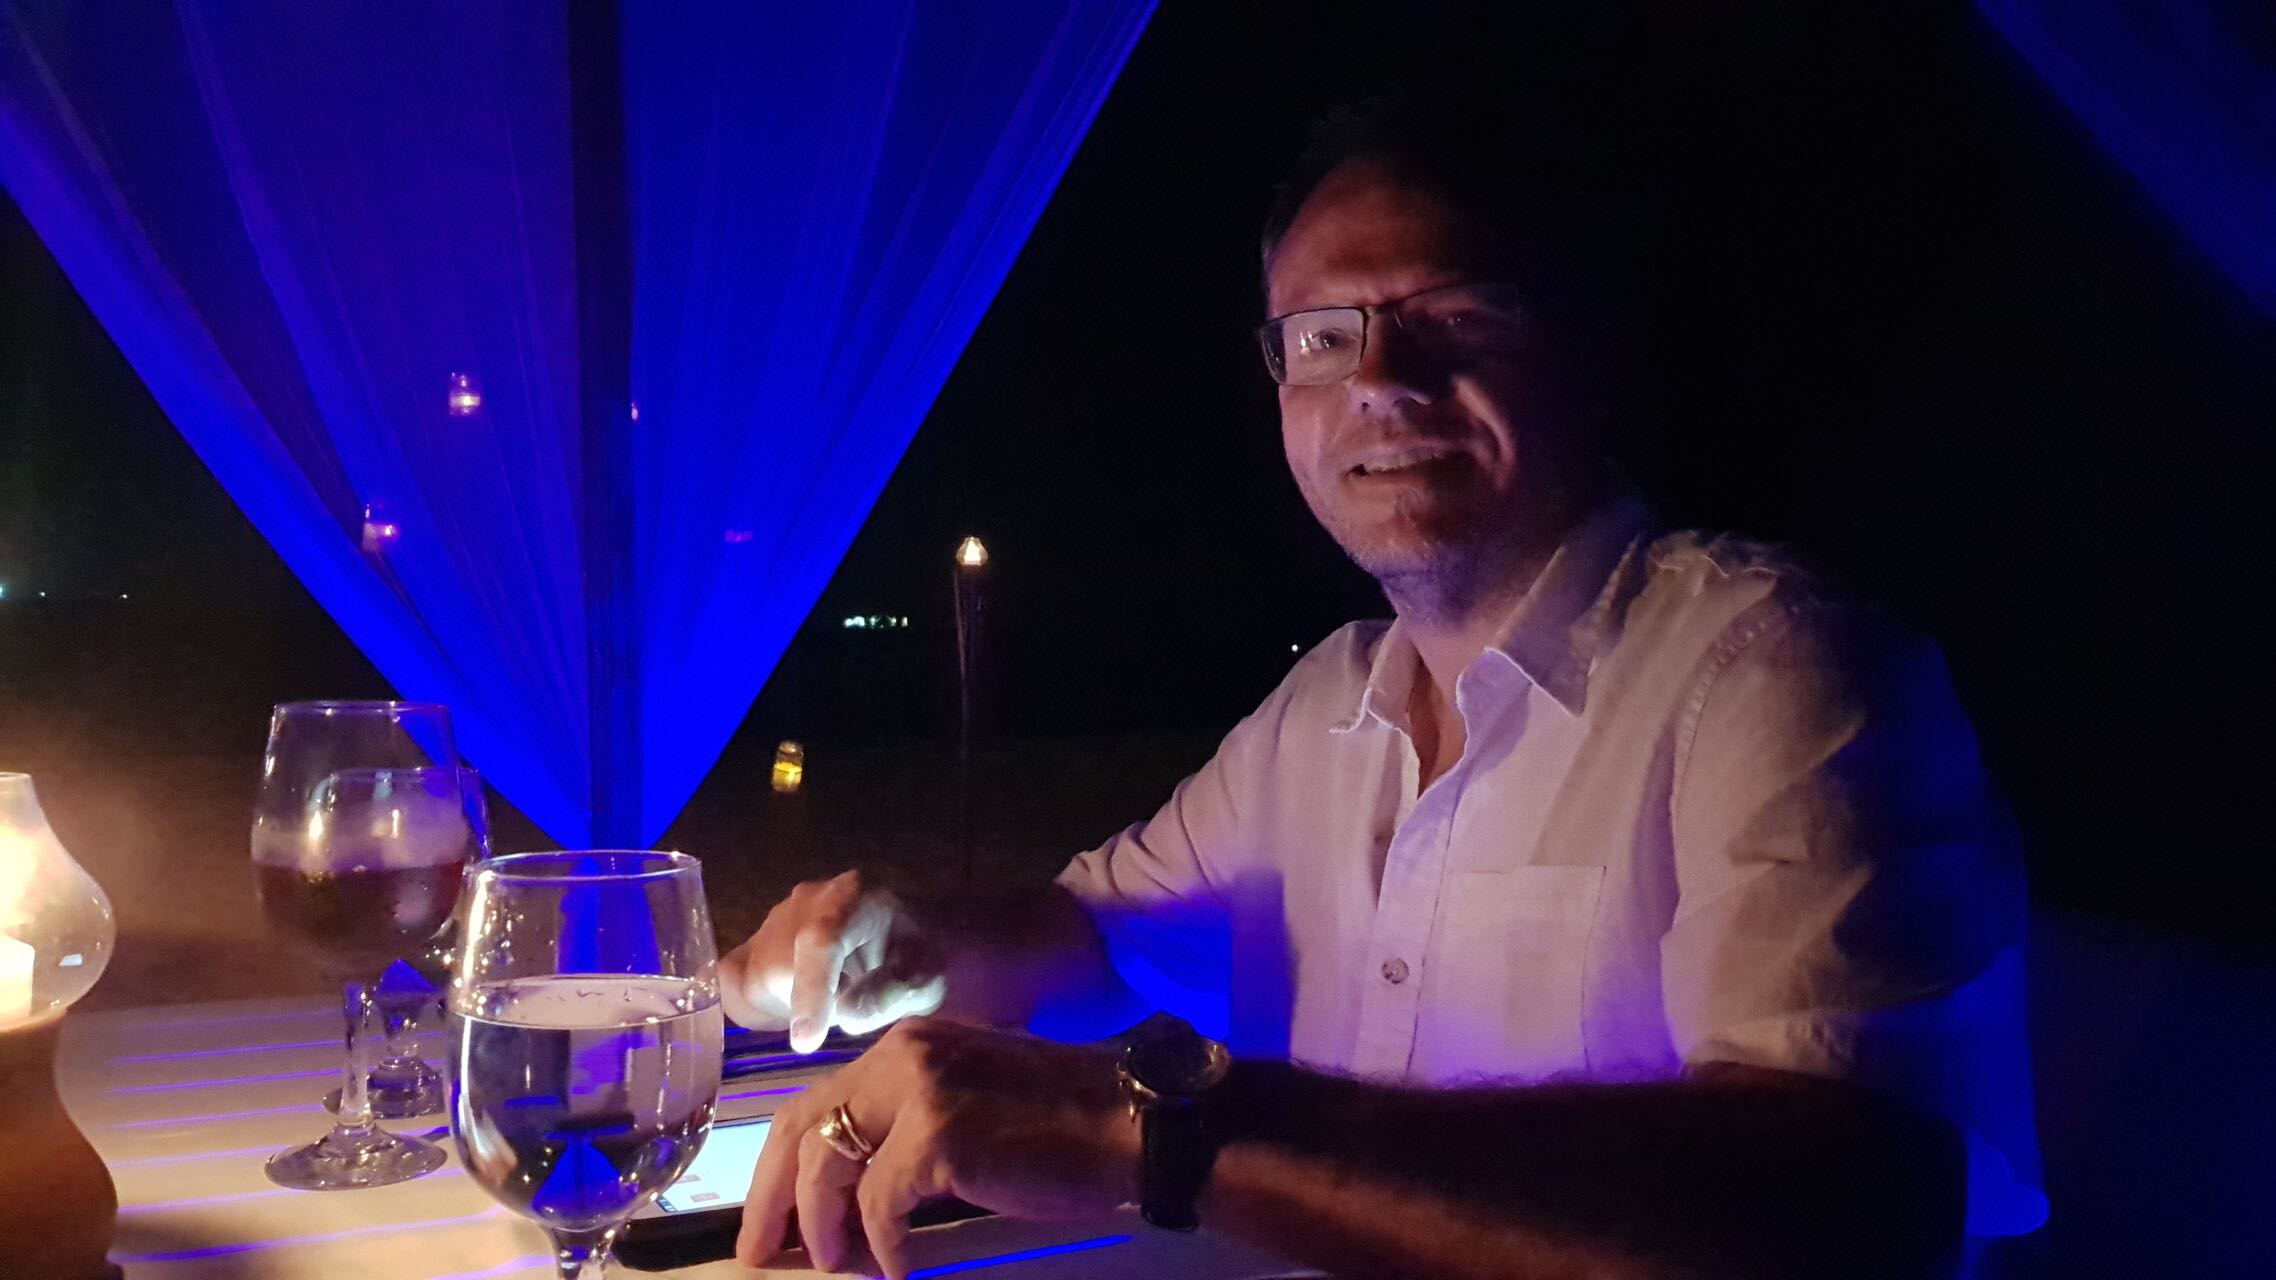 maldives-oblu-by-atmosphere-at-helengeli-dinner-holiday-review-feedback-invite-to-paradise-quentin-kate-hulm.jpg